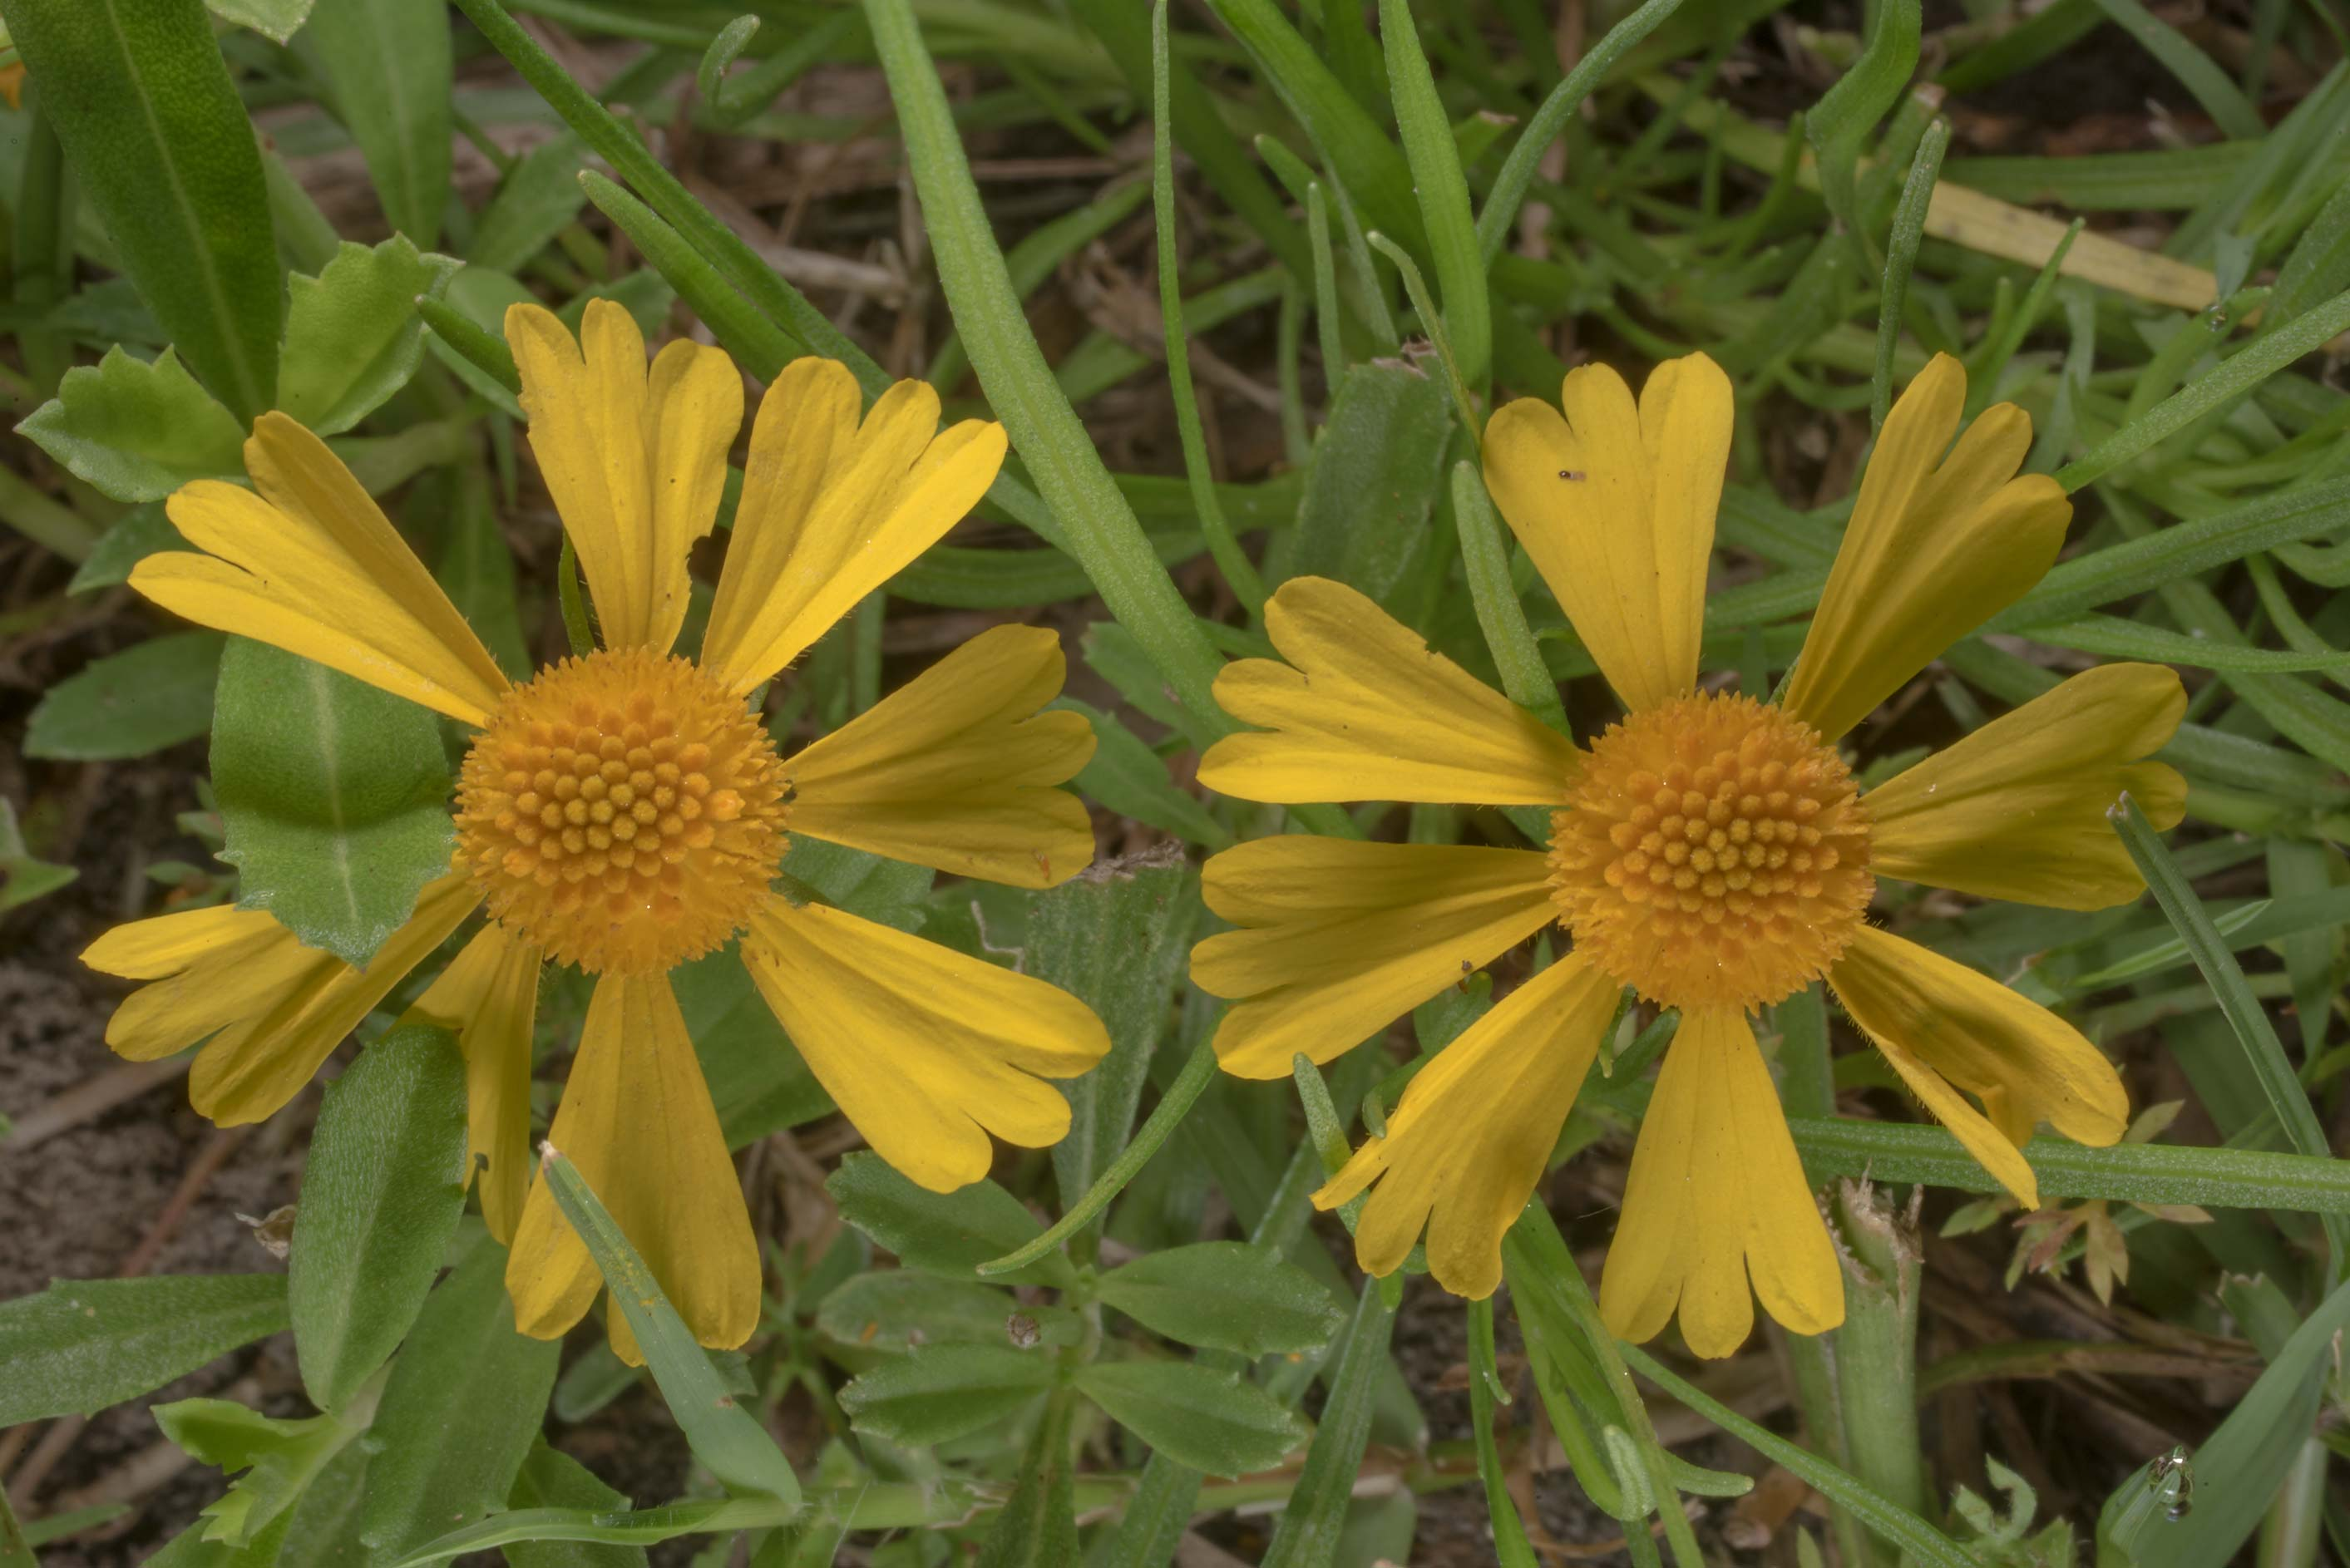 Yellow flowers of sneezeweed (Helenium amarum) in...Pen Creek Park. College Station, Texas